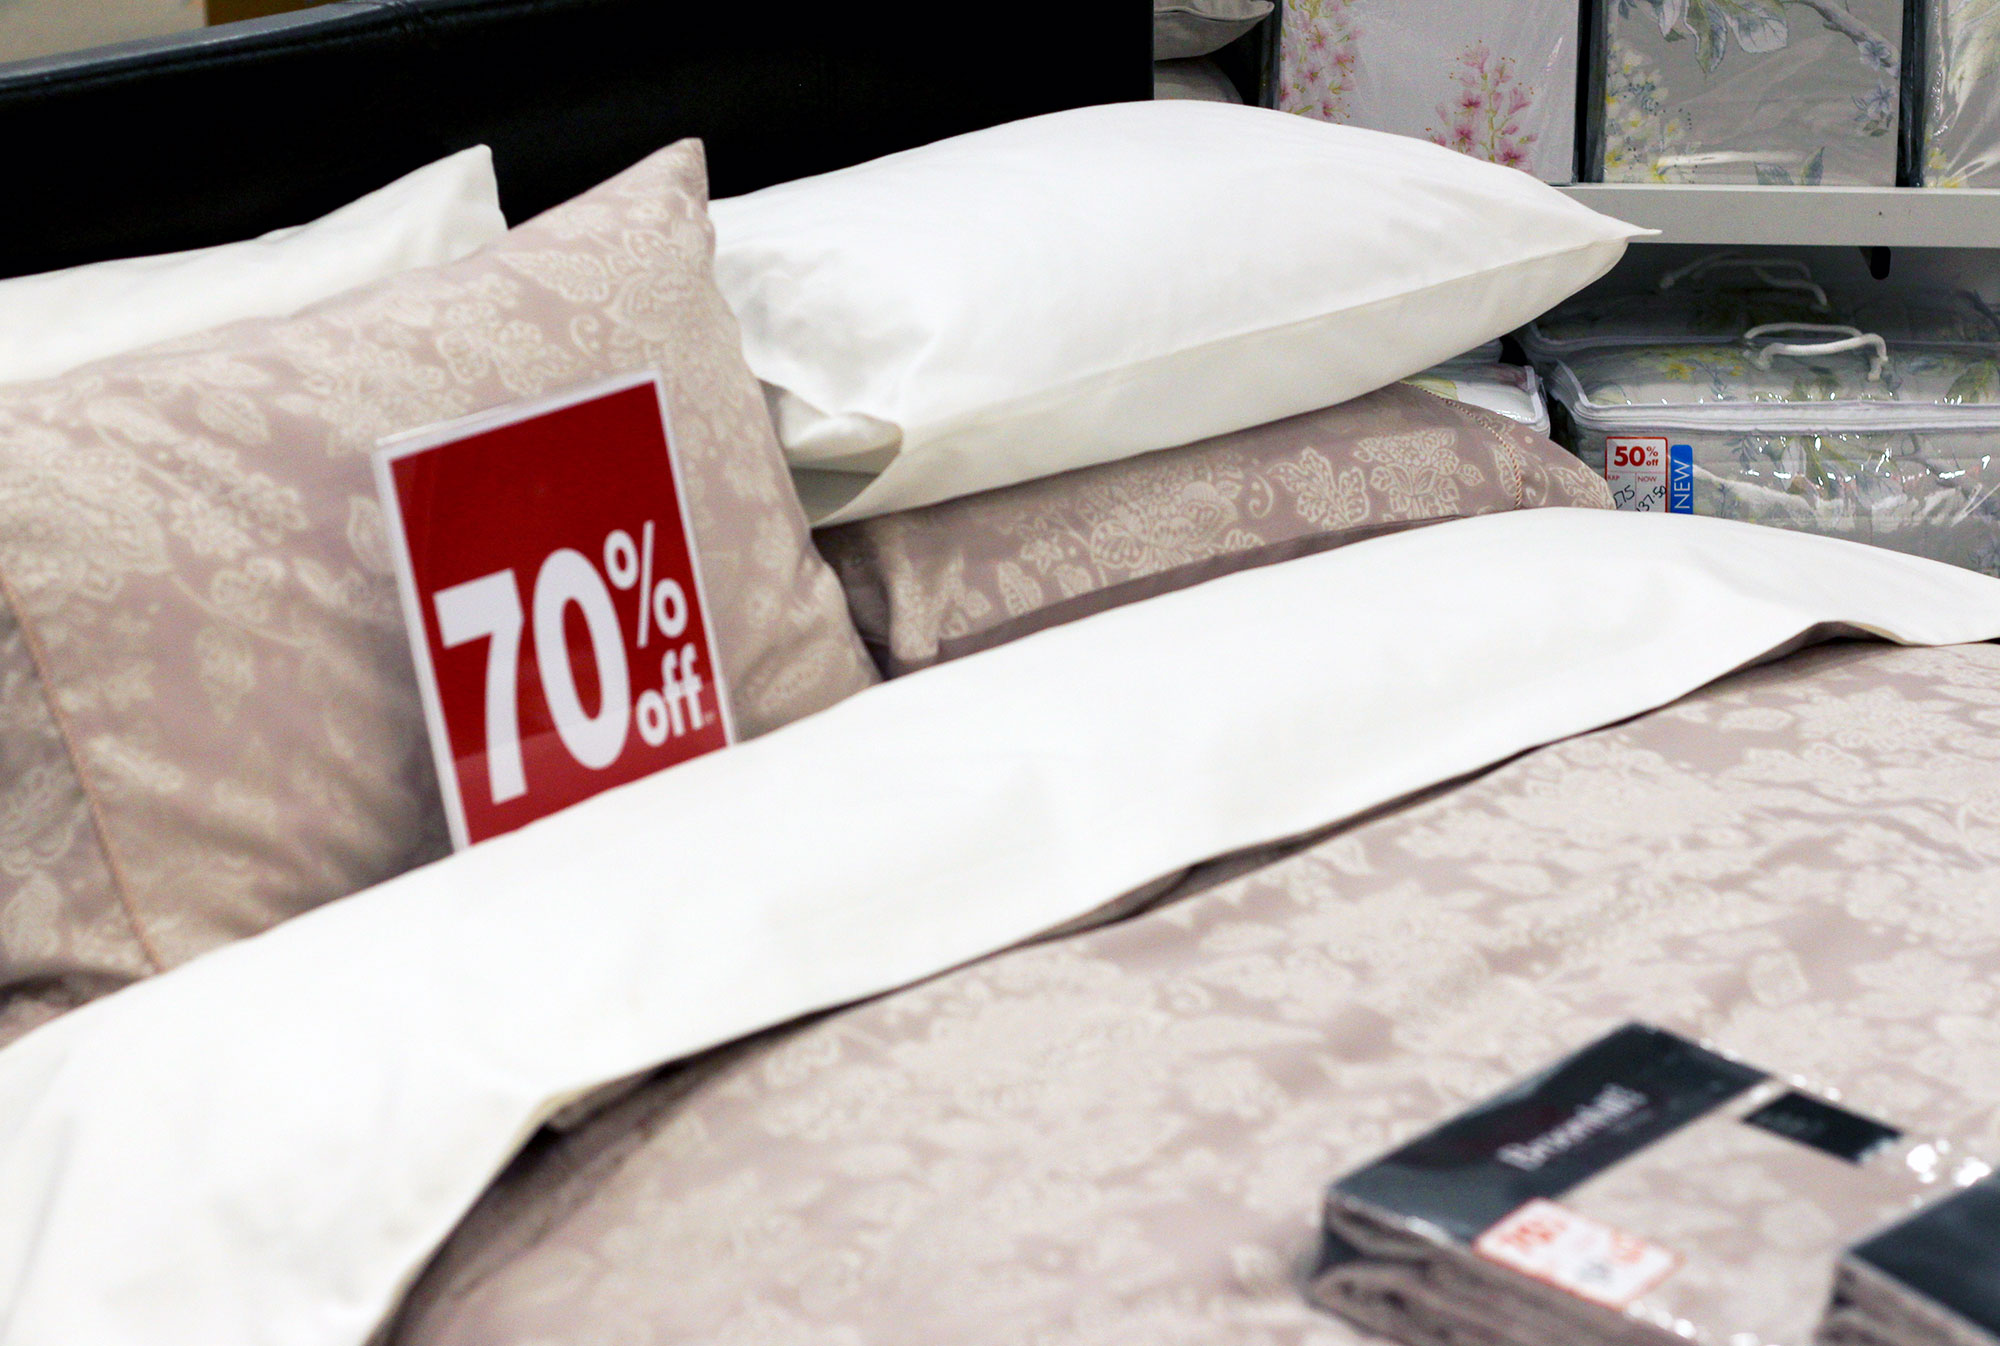 Up to 70% off selected bedding at Menarys